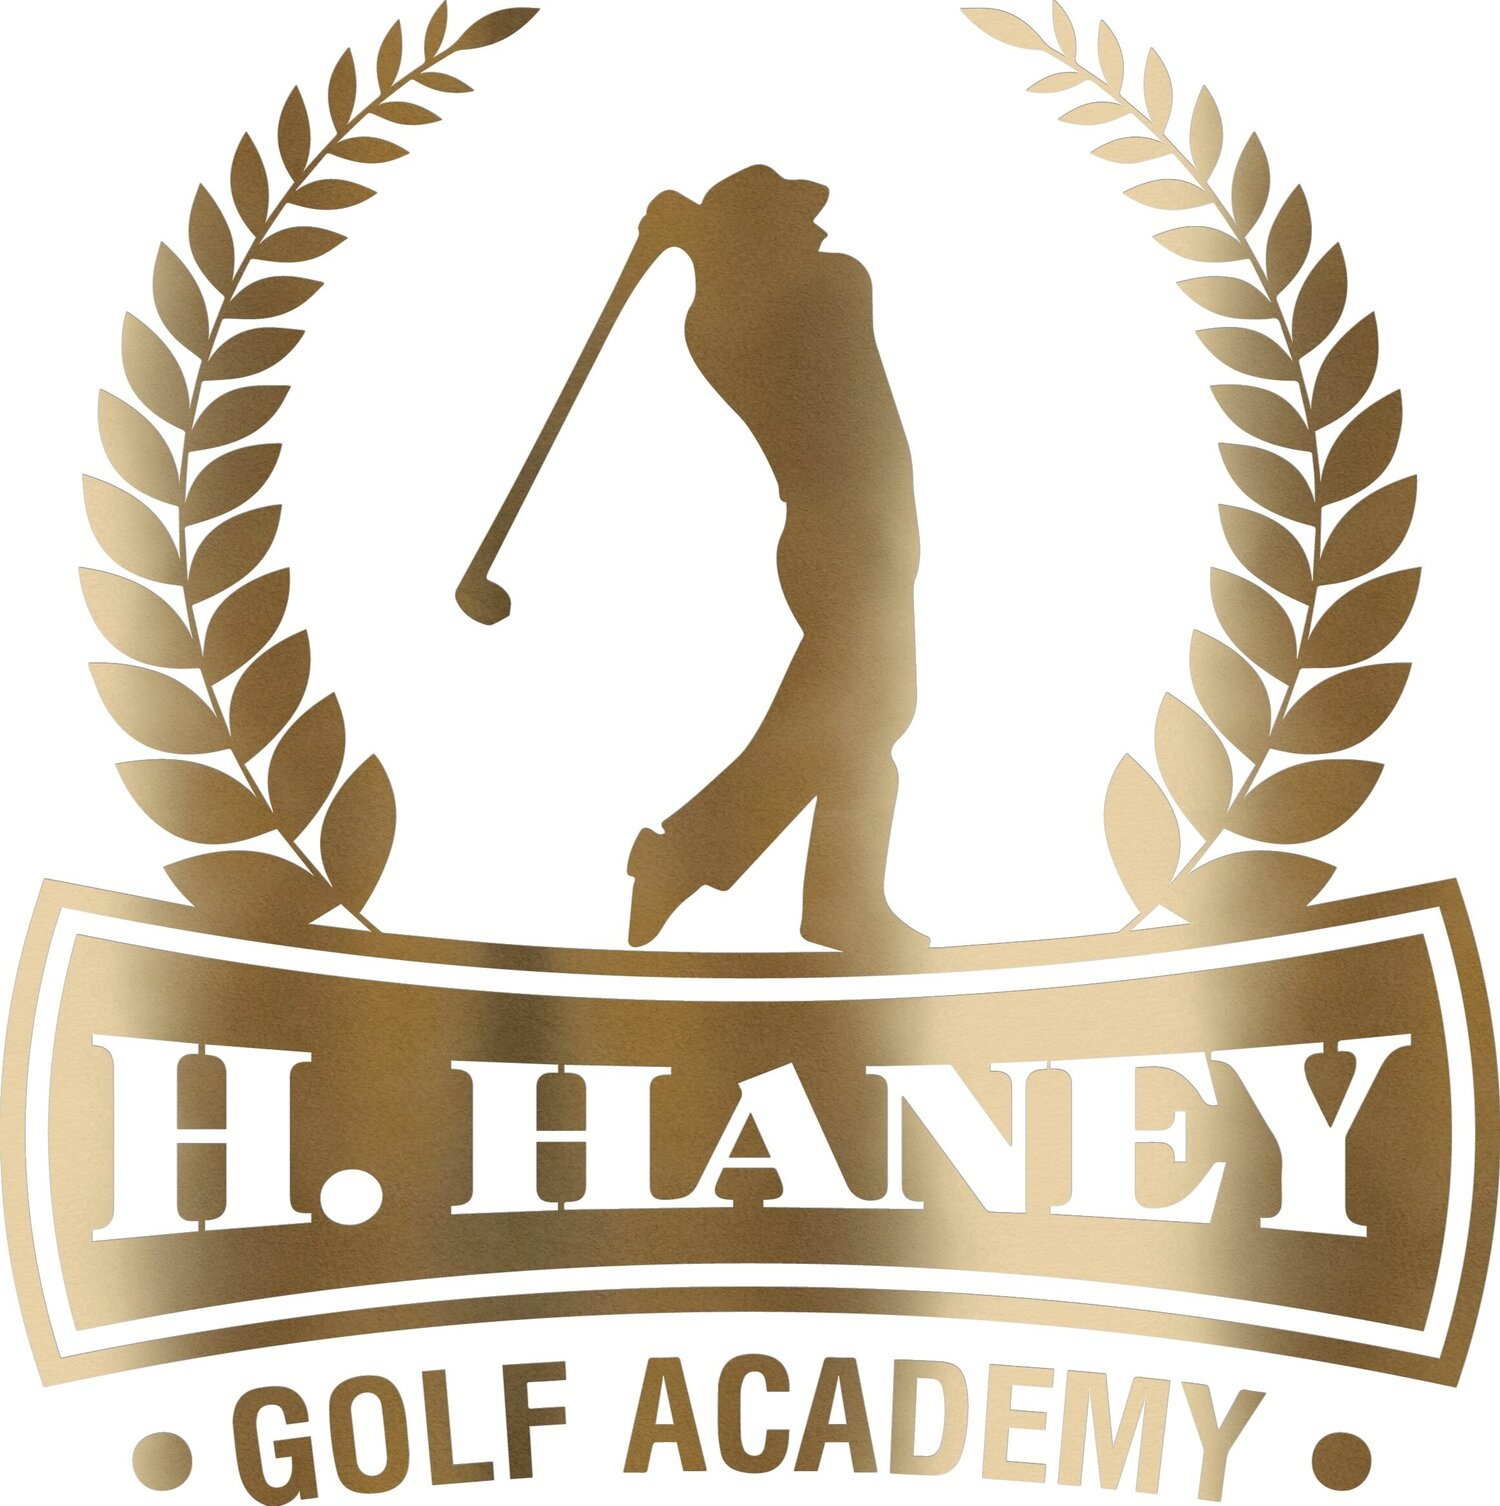 H. Haney Golf